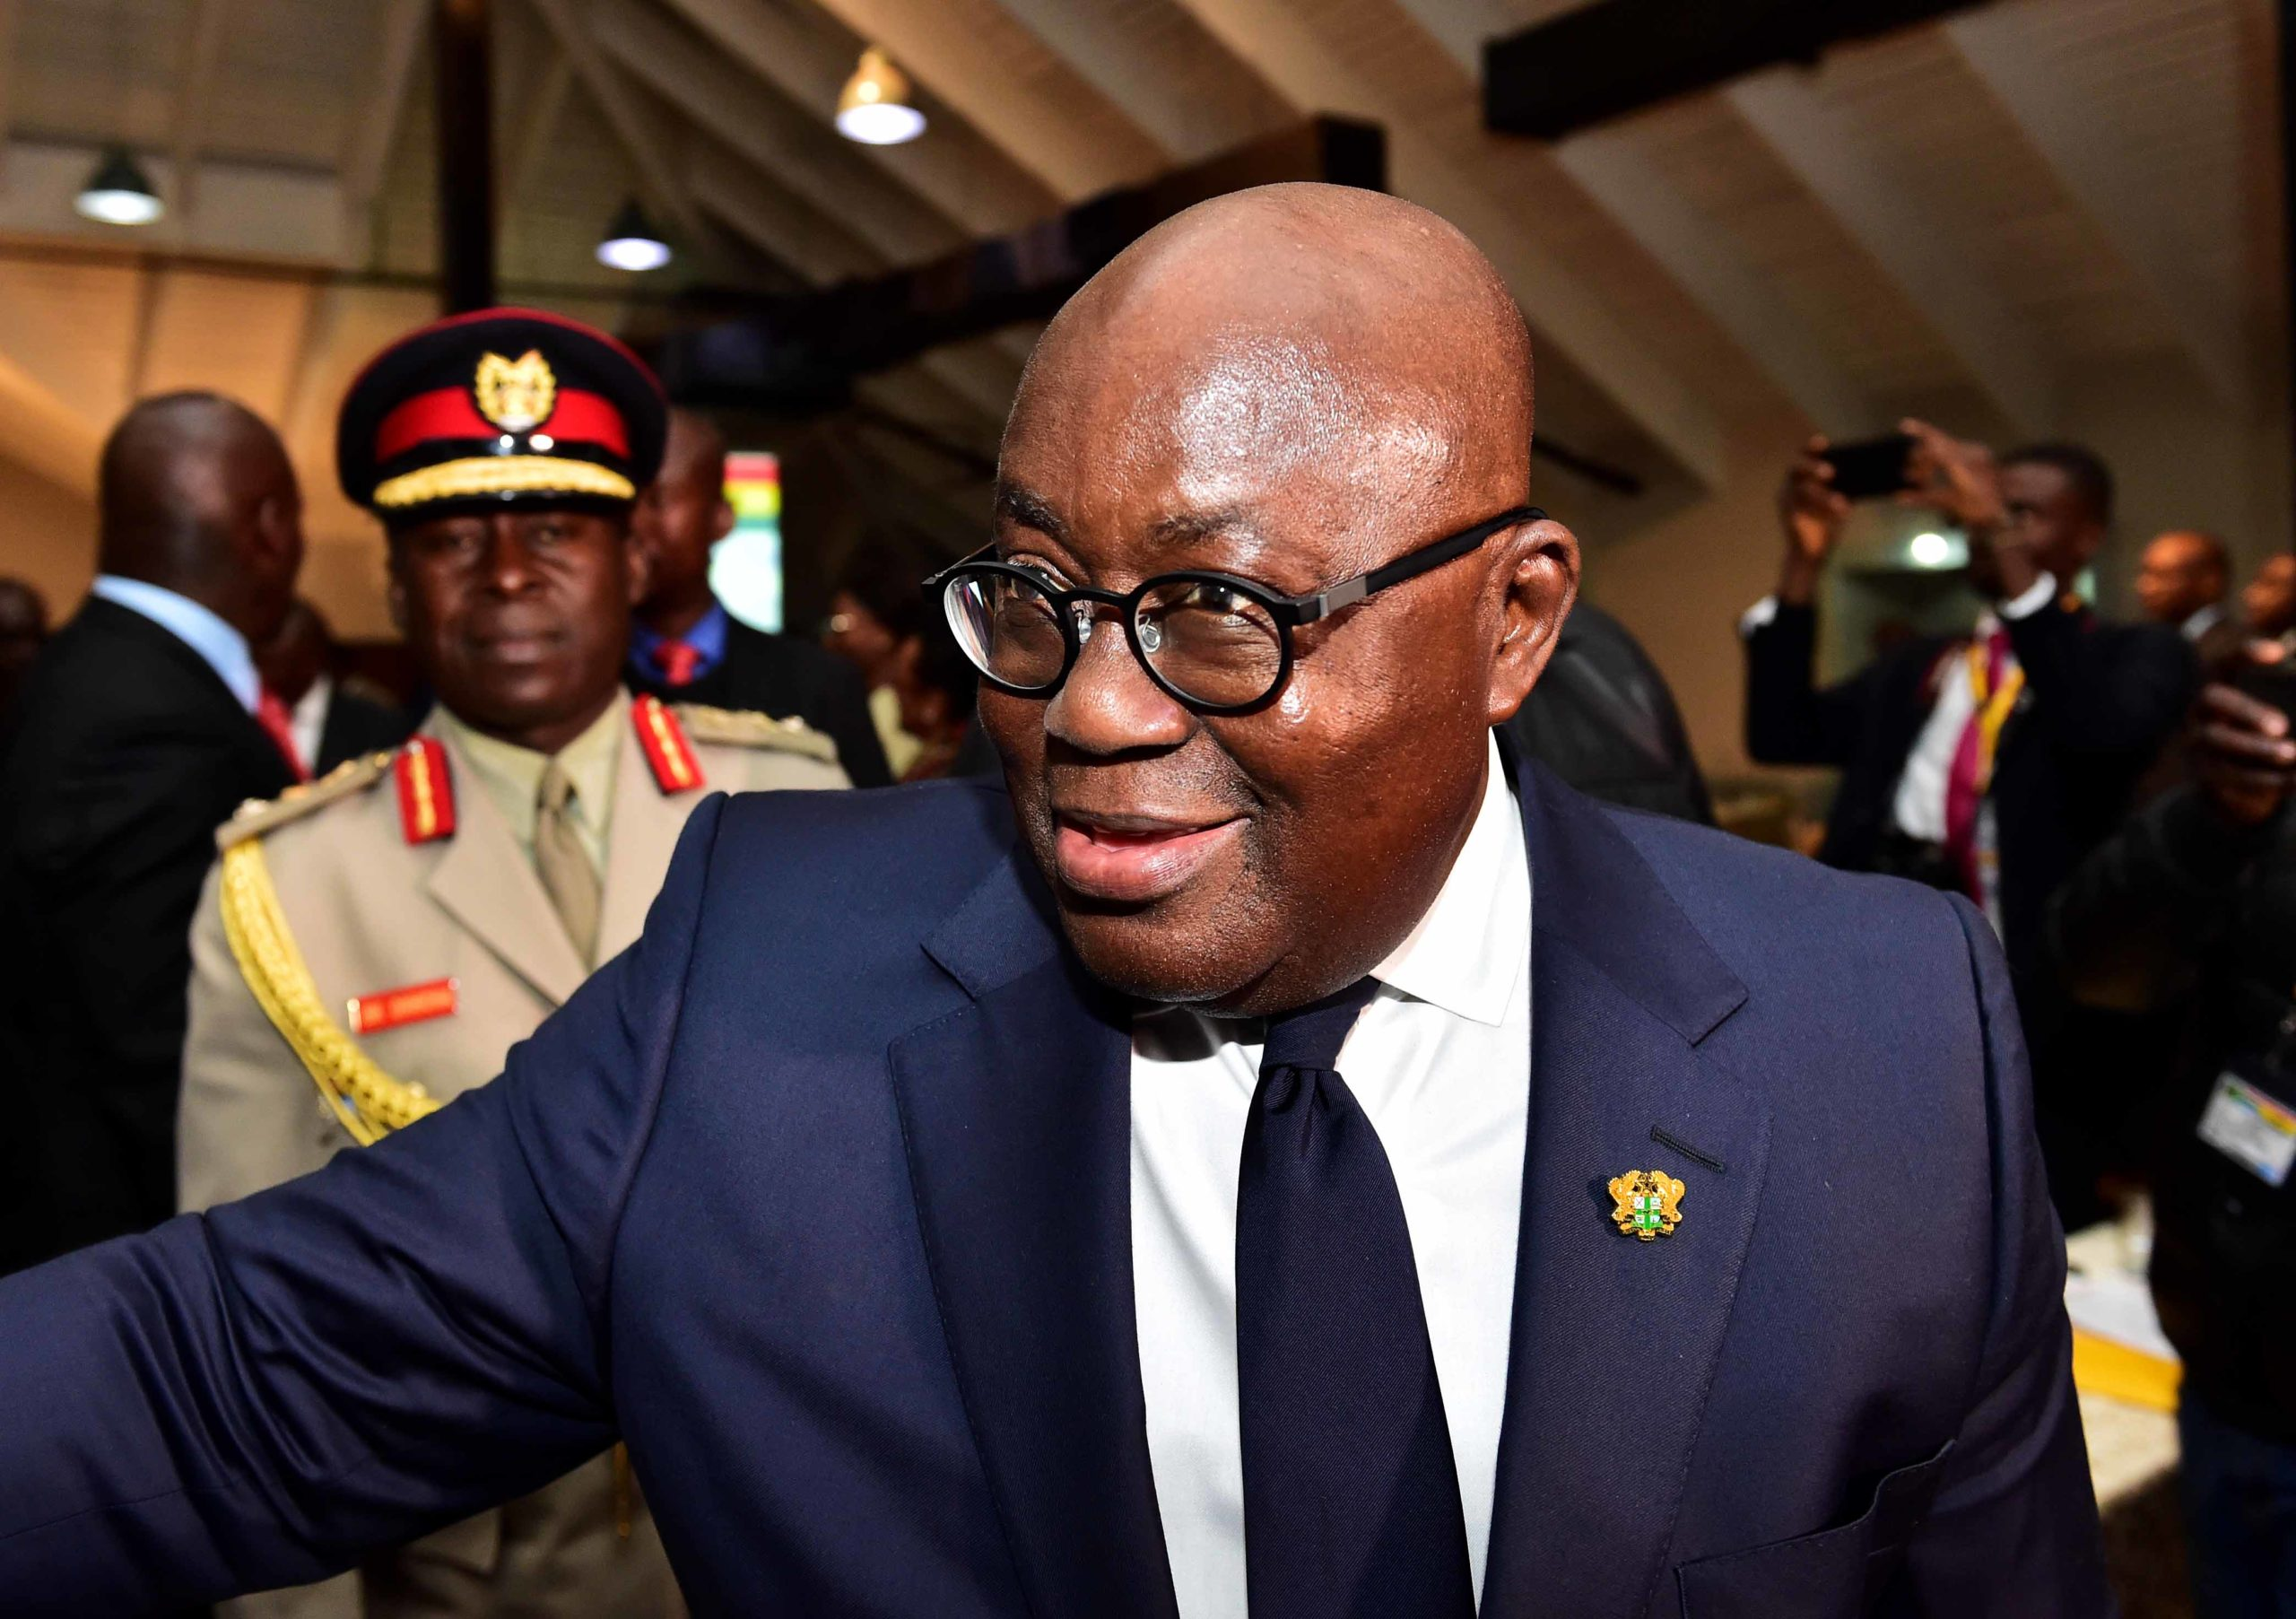 Ghanaian President Nana Akufo-Addo. Photo courtesy of GovernmentZA.